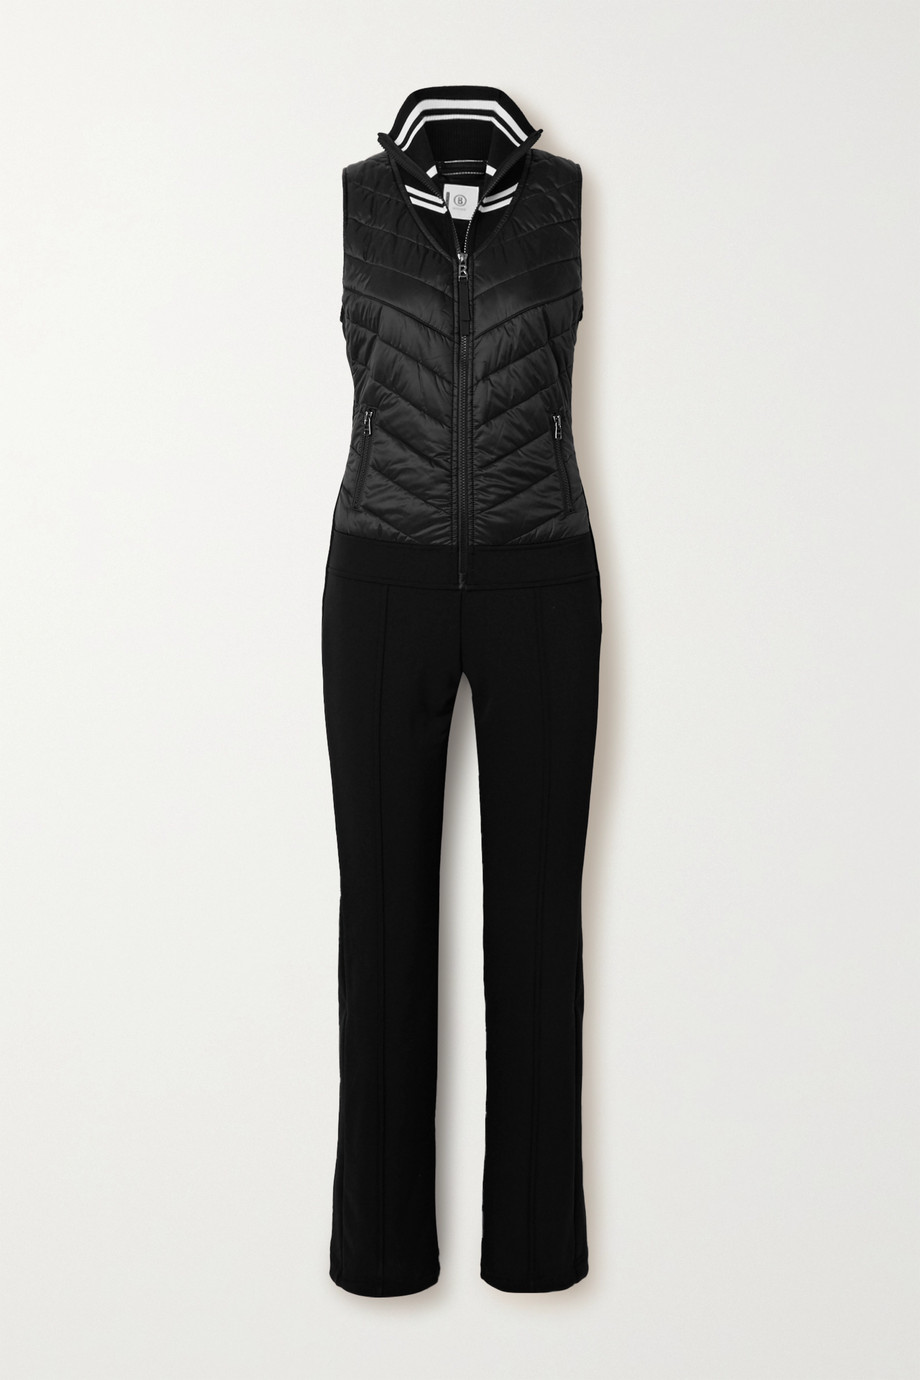 Bogner Carys quilted shell and ponte ski suit